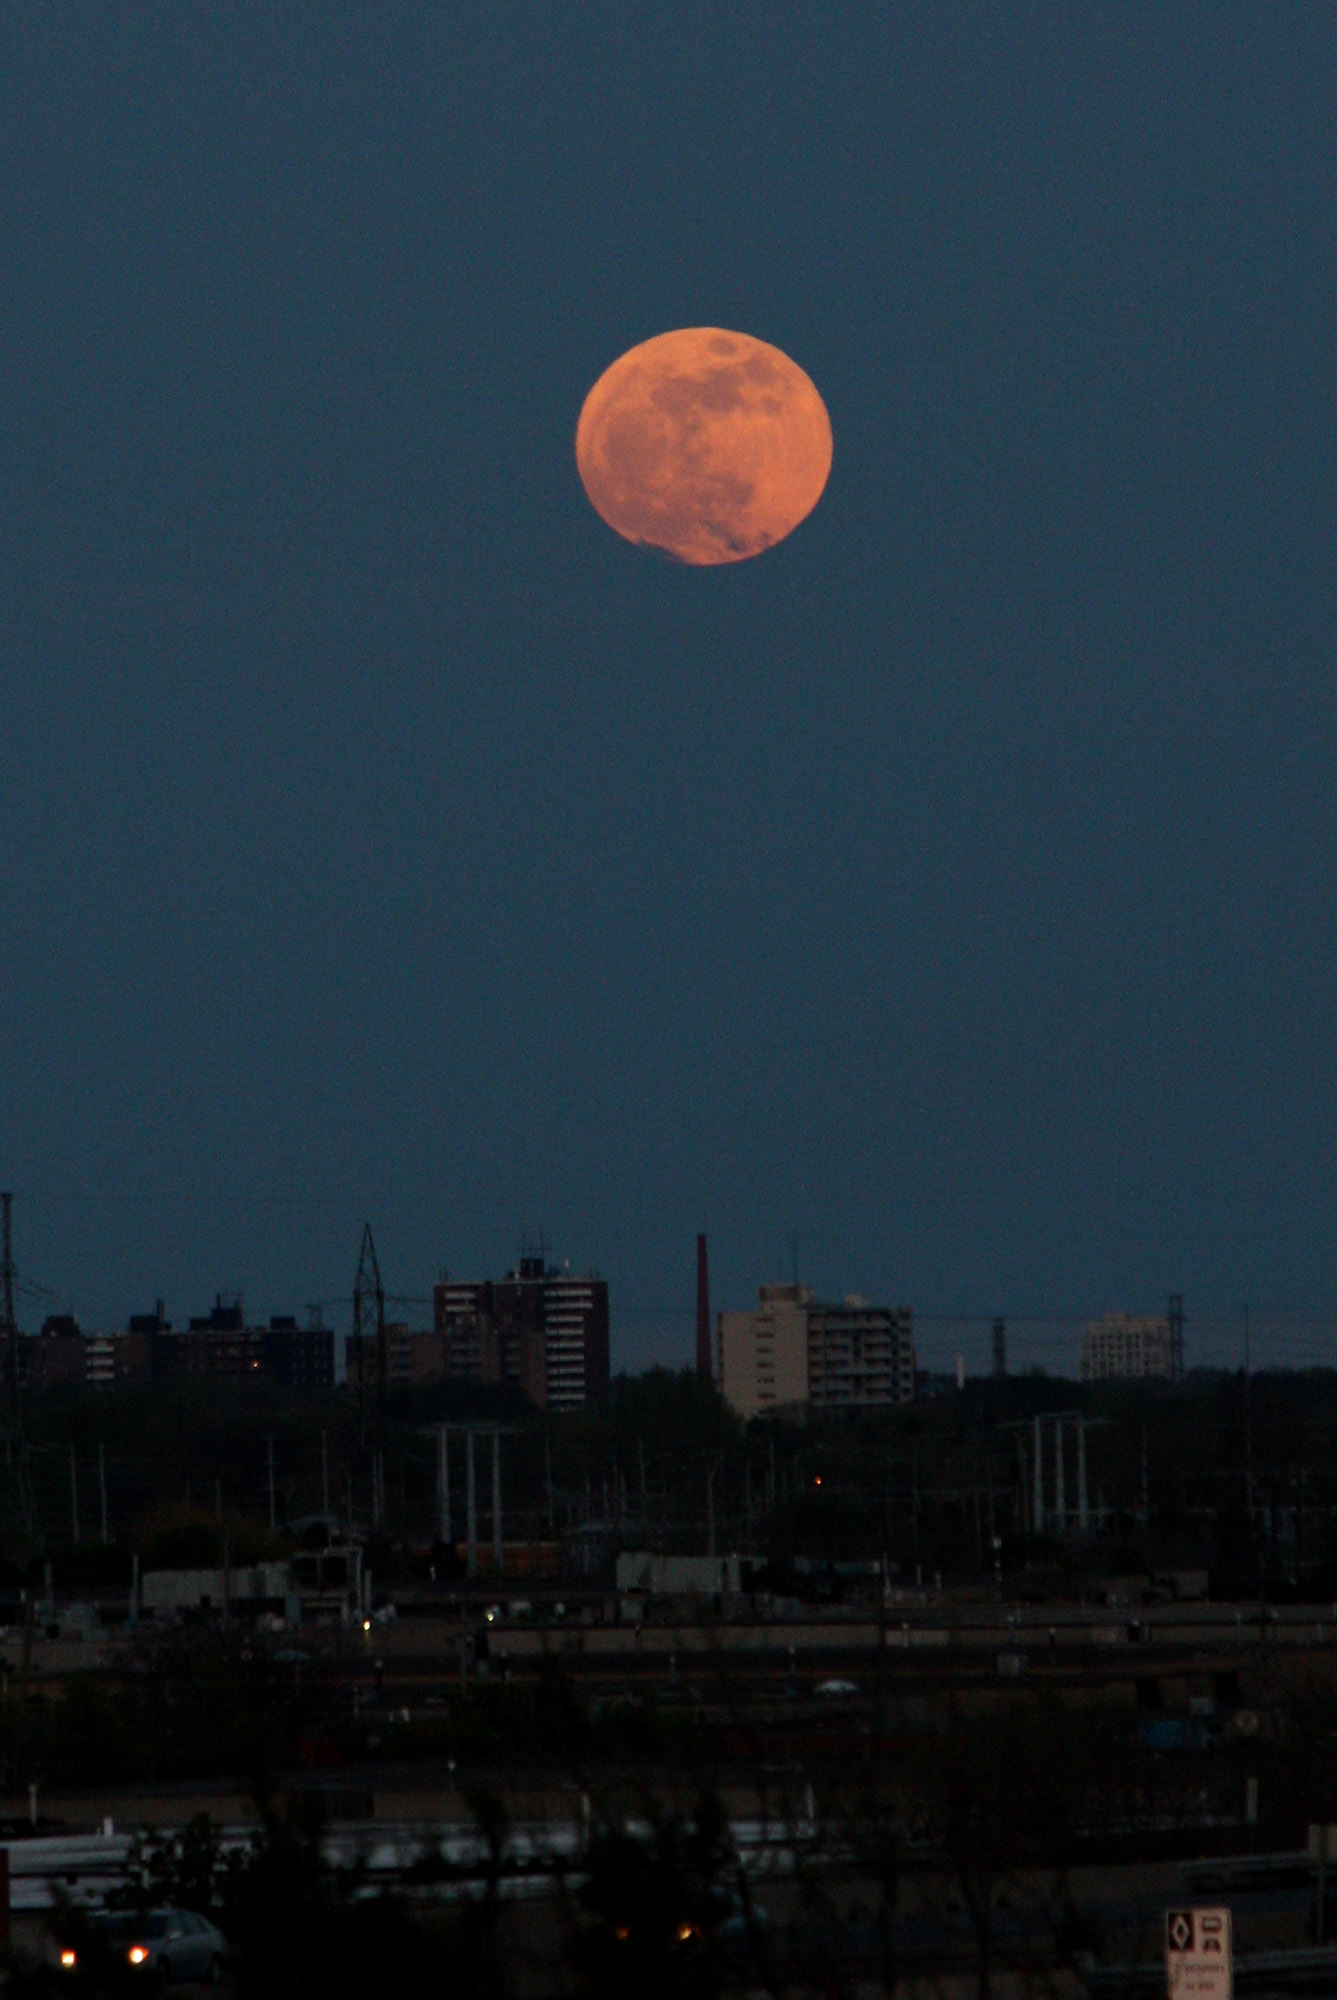 Supermoon 2012 Over Toronto: Reuben Opena